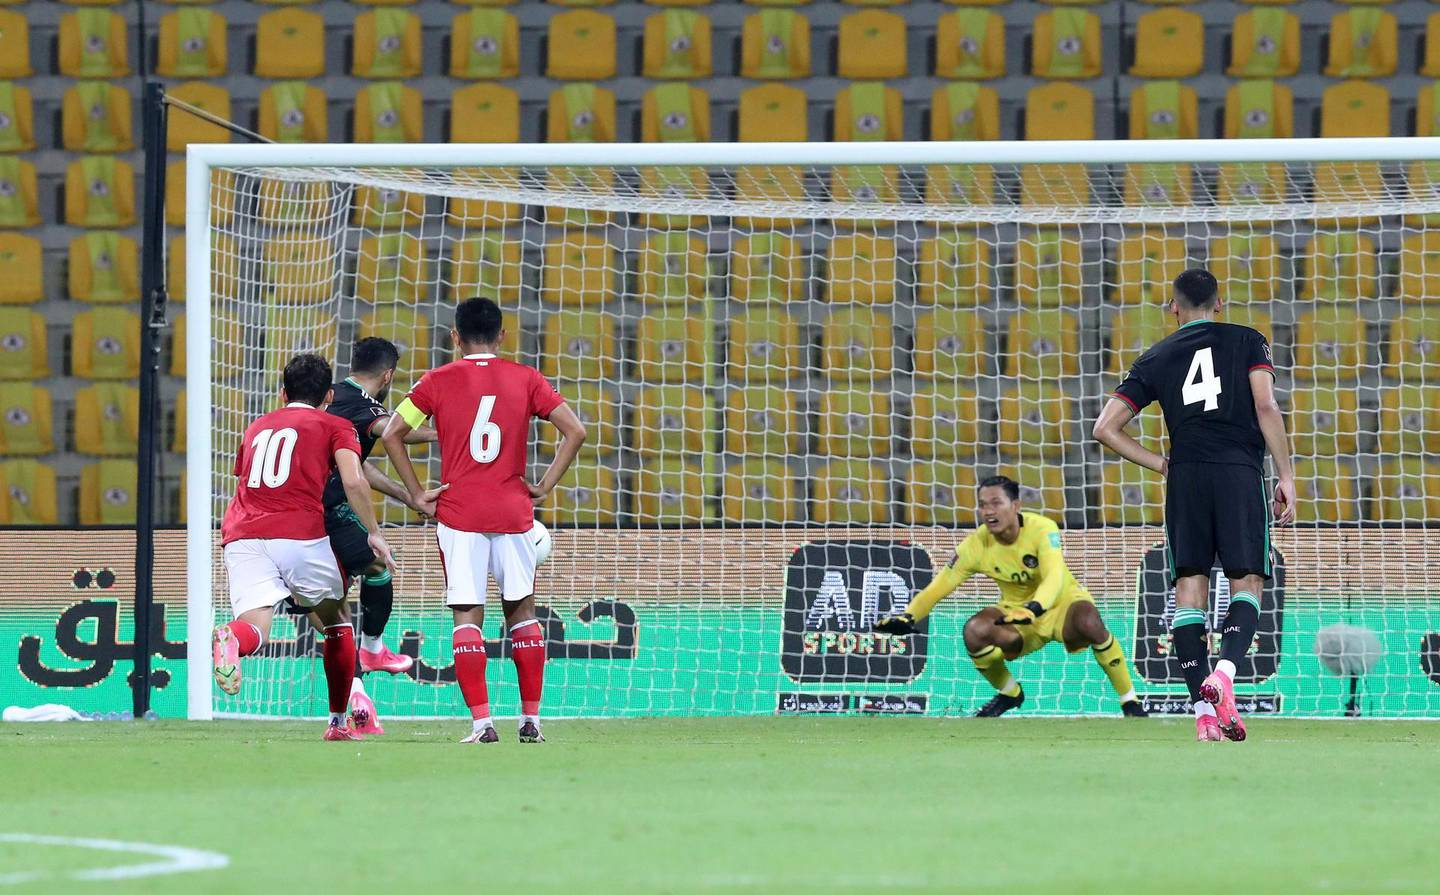 UAE's Ali Mabkhout scores his second goal from the spot during the game between the UAE and Indonesia in the World cup qualifiers at the Zabeel Stadium, Dubai on June 11th, 2021. Chris Whiteoak / The National.  Reporter: John McAuley for Sport